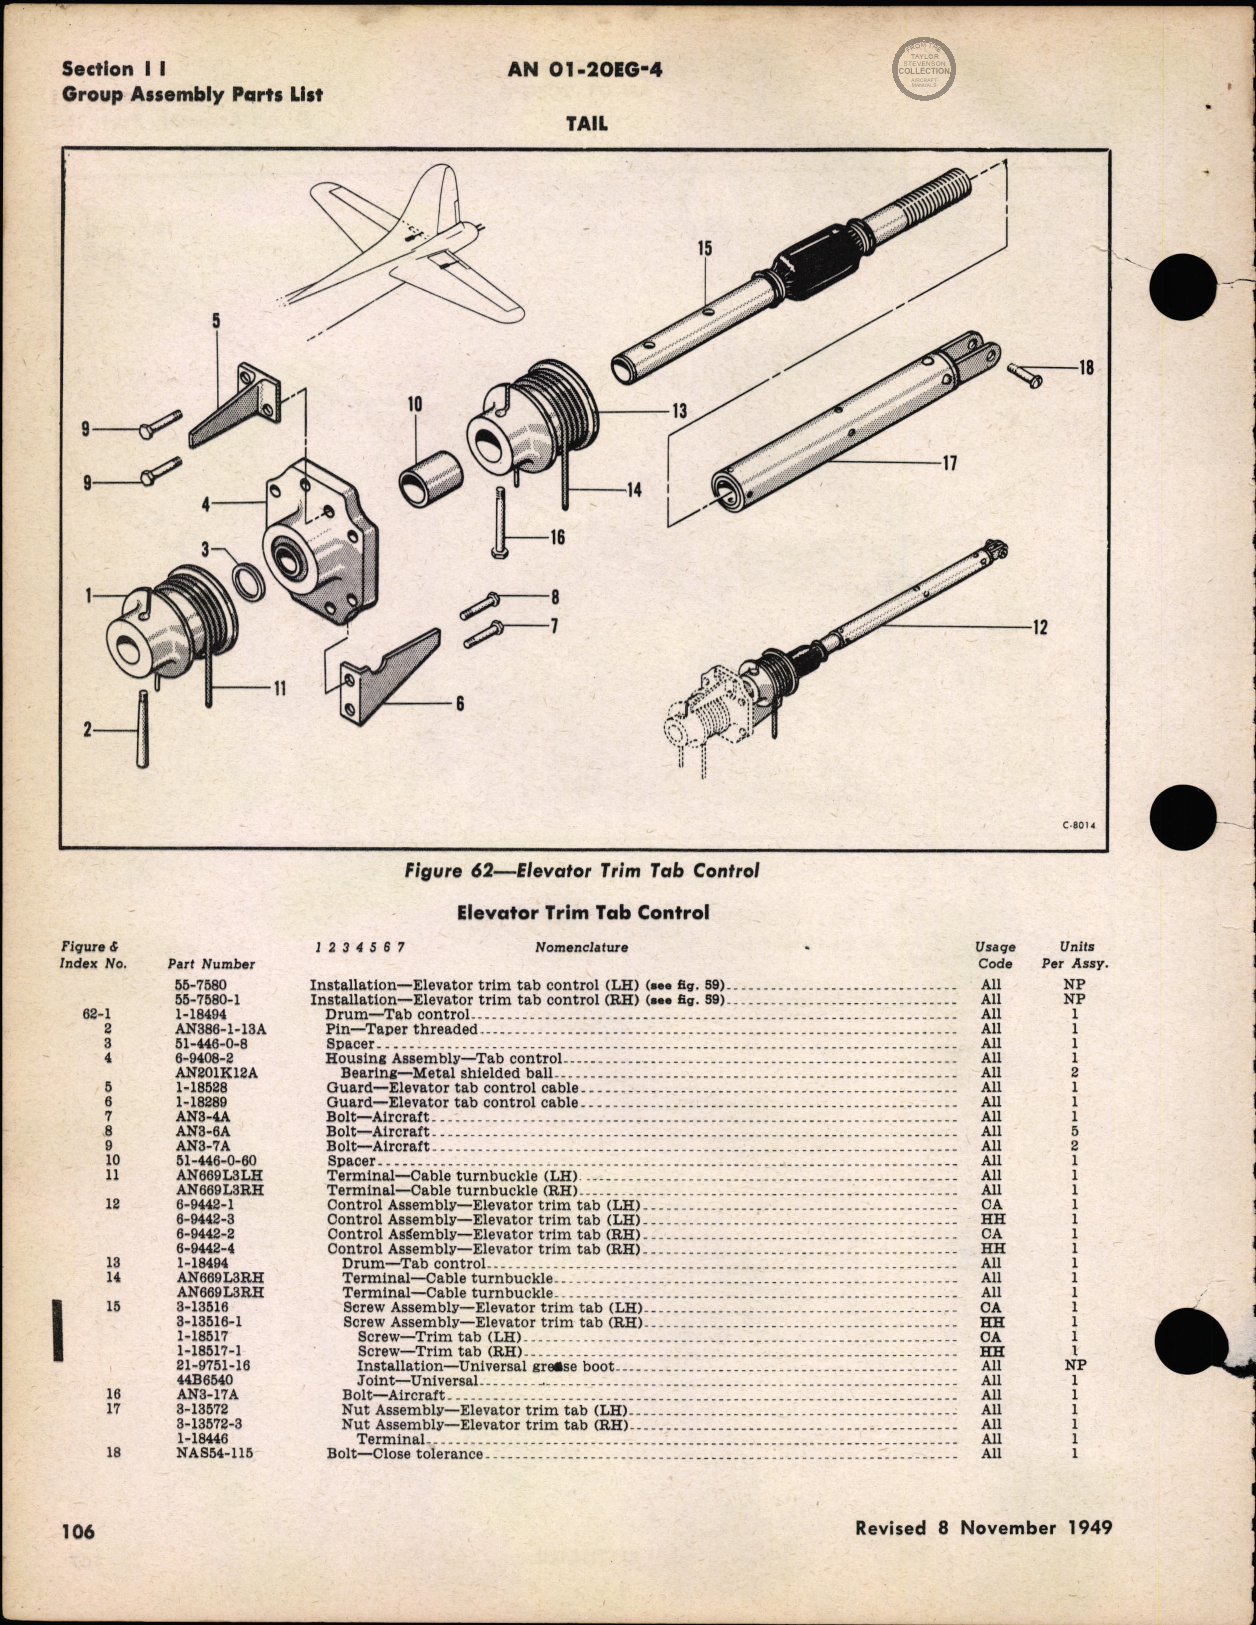 Sample page 110 from AirCorps Library document: Parts Catalog - B-17